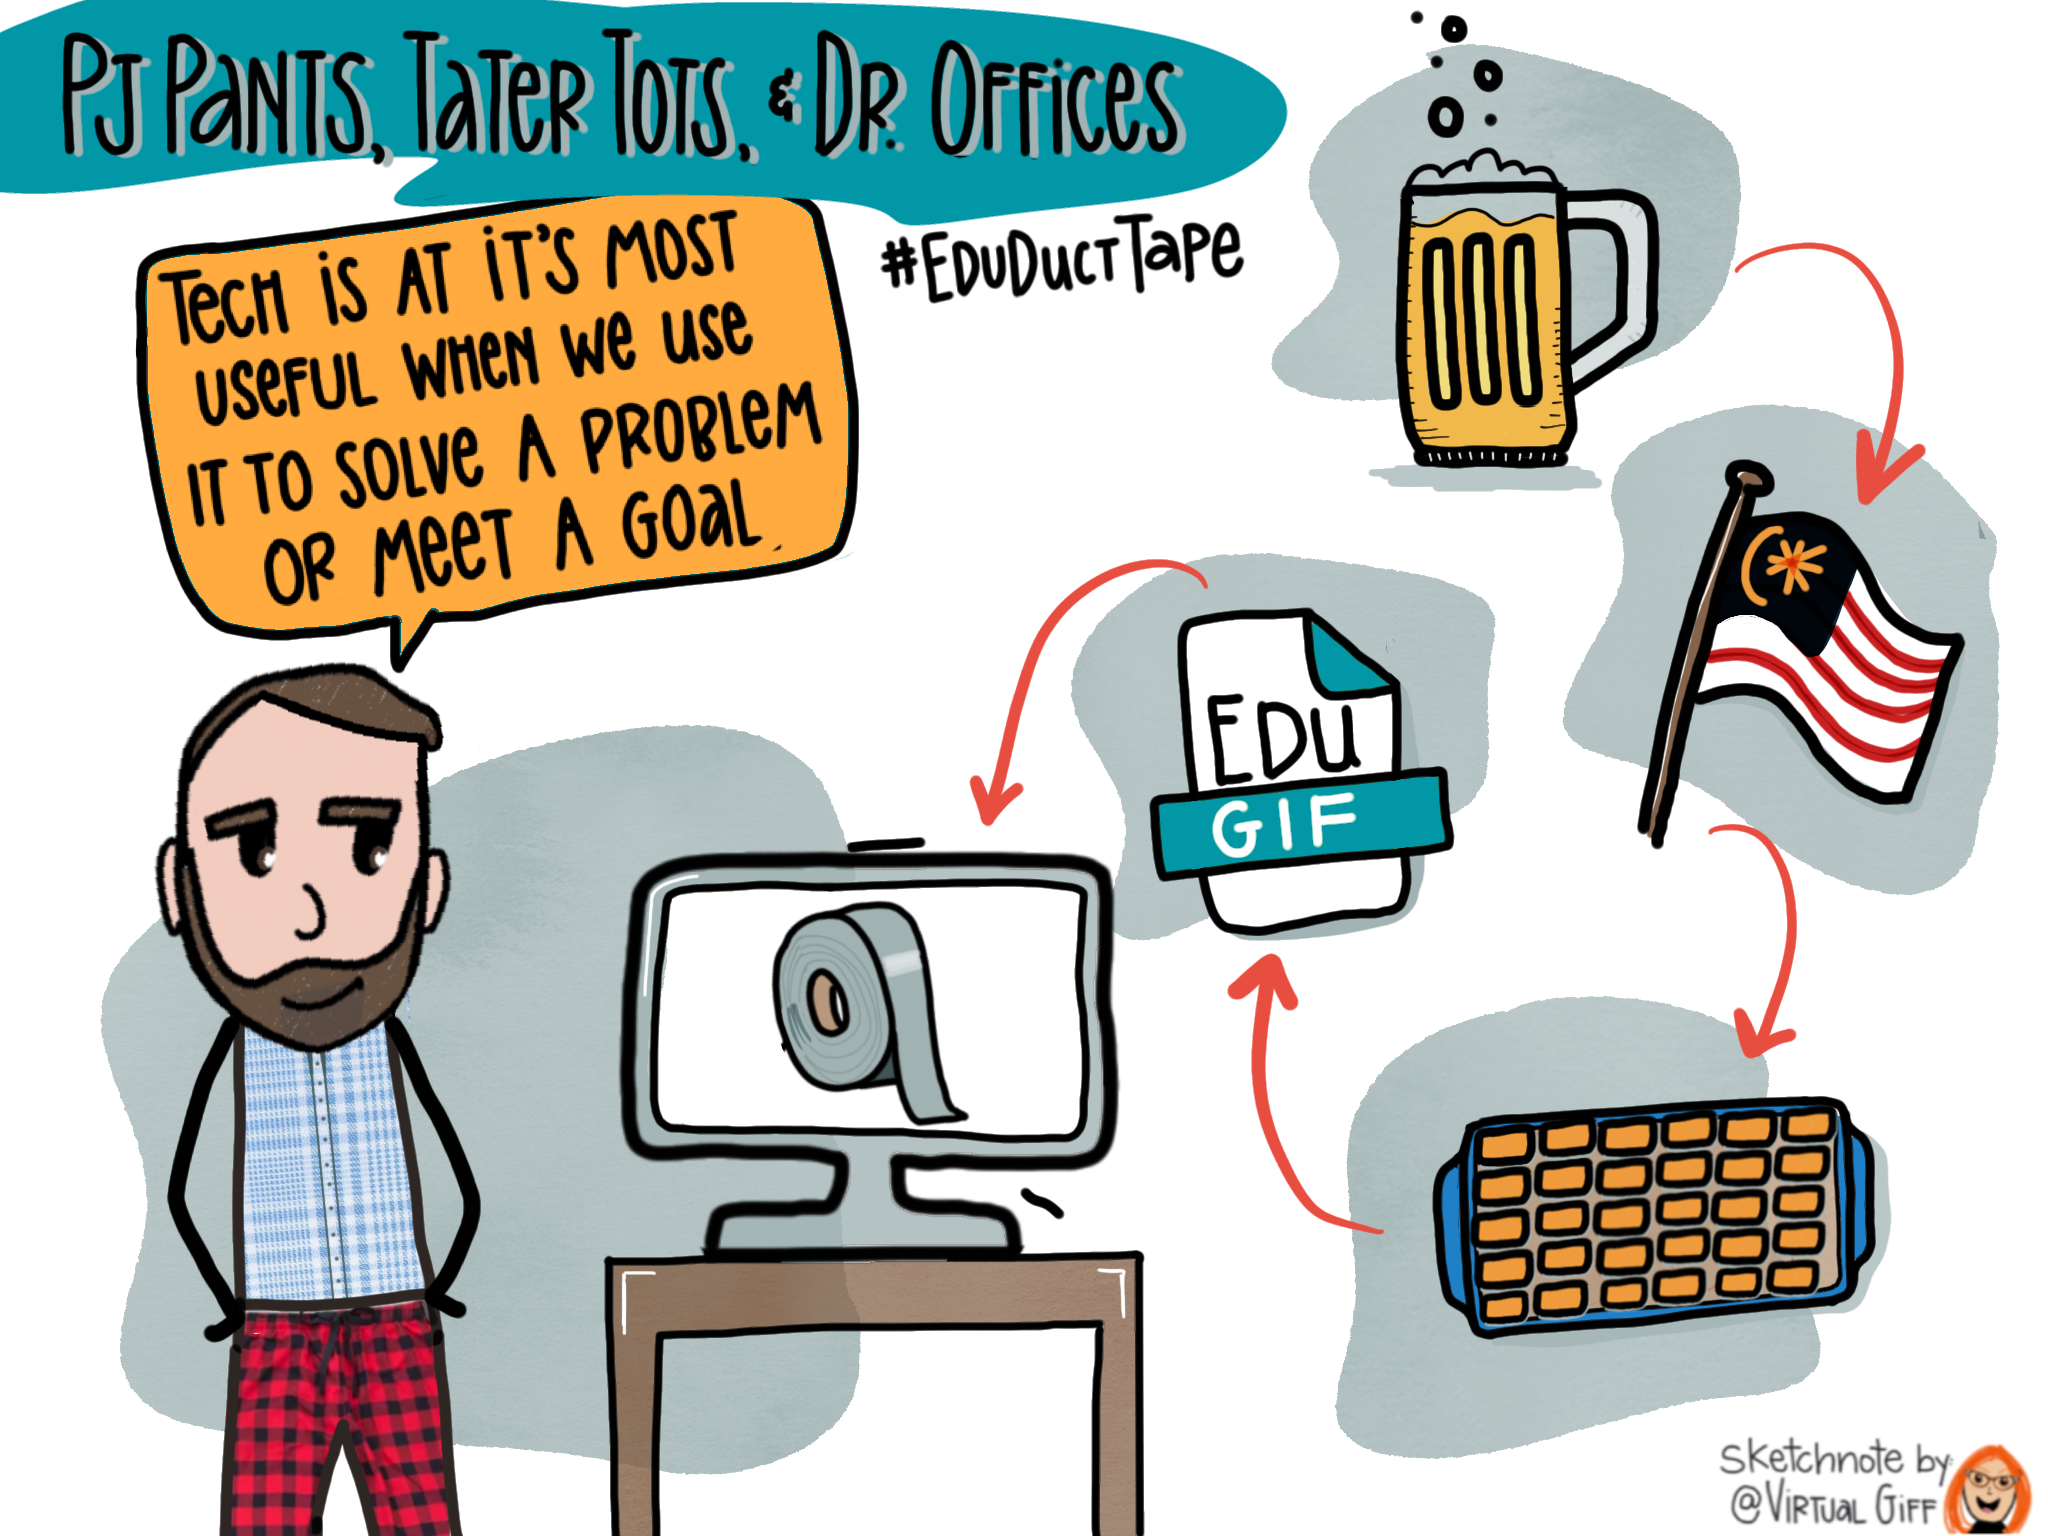 """This sketchnote shows a picture of Jake wearing a dress shirt and pajama pants. He is looking at a set of images connected in order by arrows - a glass of beer, a Malaysian flag, a tater tot casserole, an EduGIF symbol, and a computer with a roll of duct tape on the screen. The text says """"PJ Pants, Tater Tots & Dr. Offices."""" A speech bubble by Jake's head says """"EdTech is. at its most useful when we use it to solve a problem or meet a goal."""""""